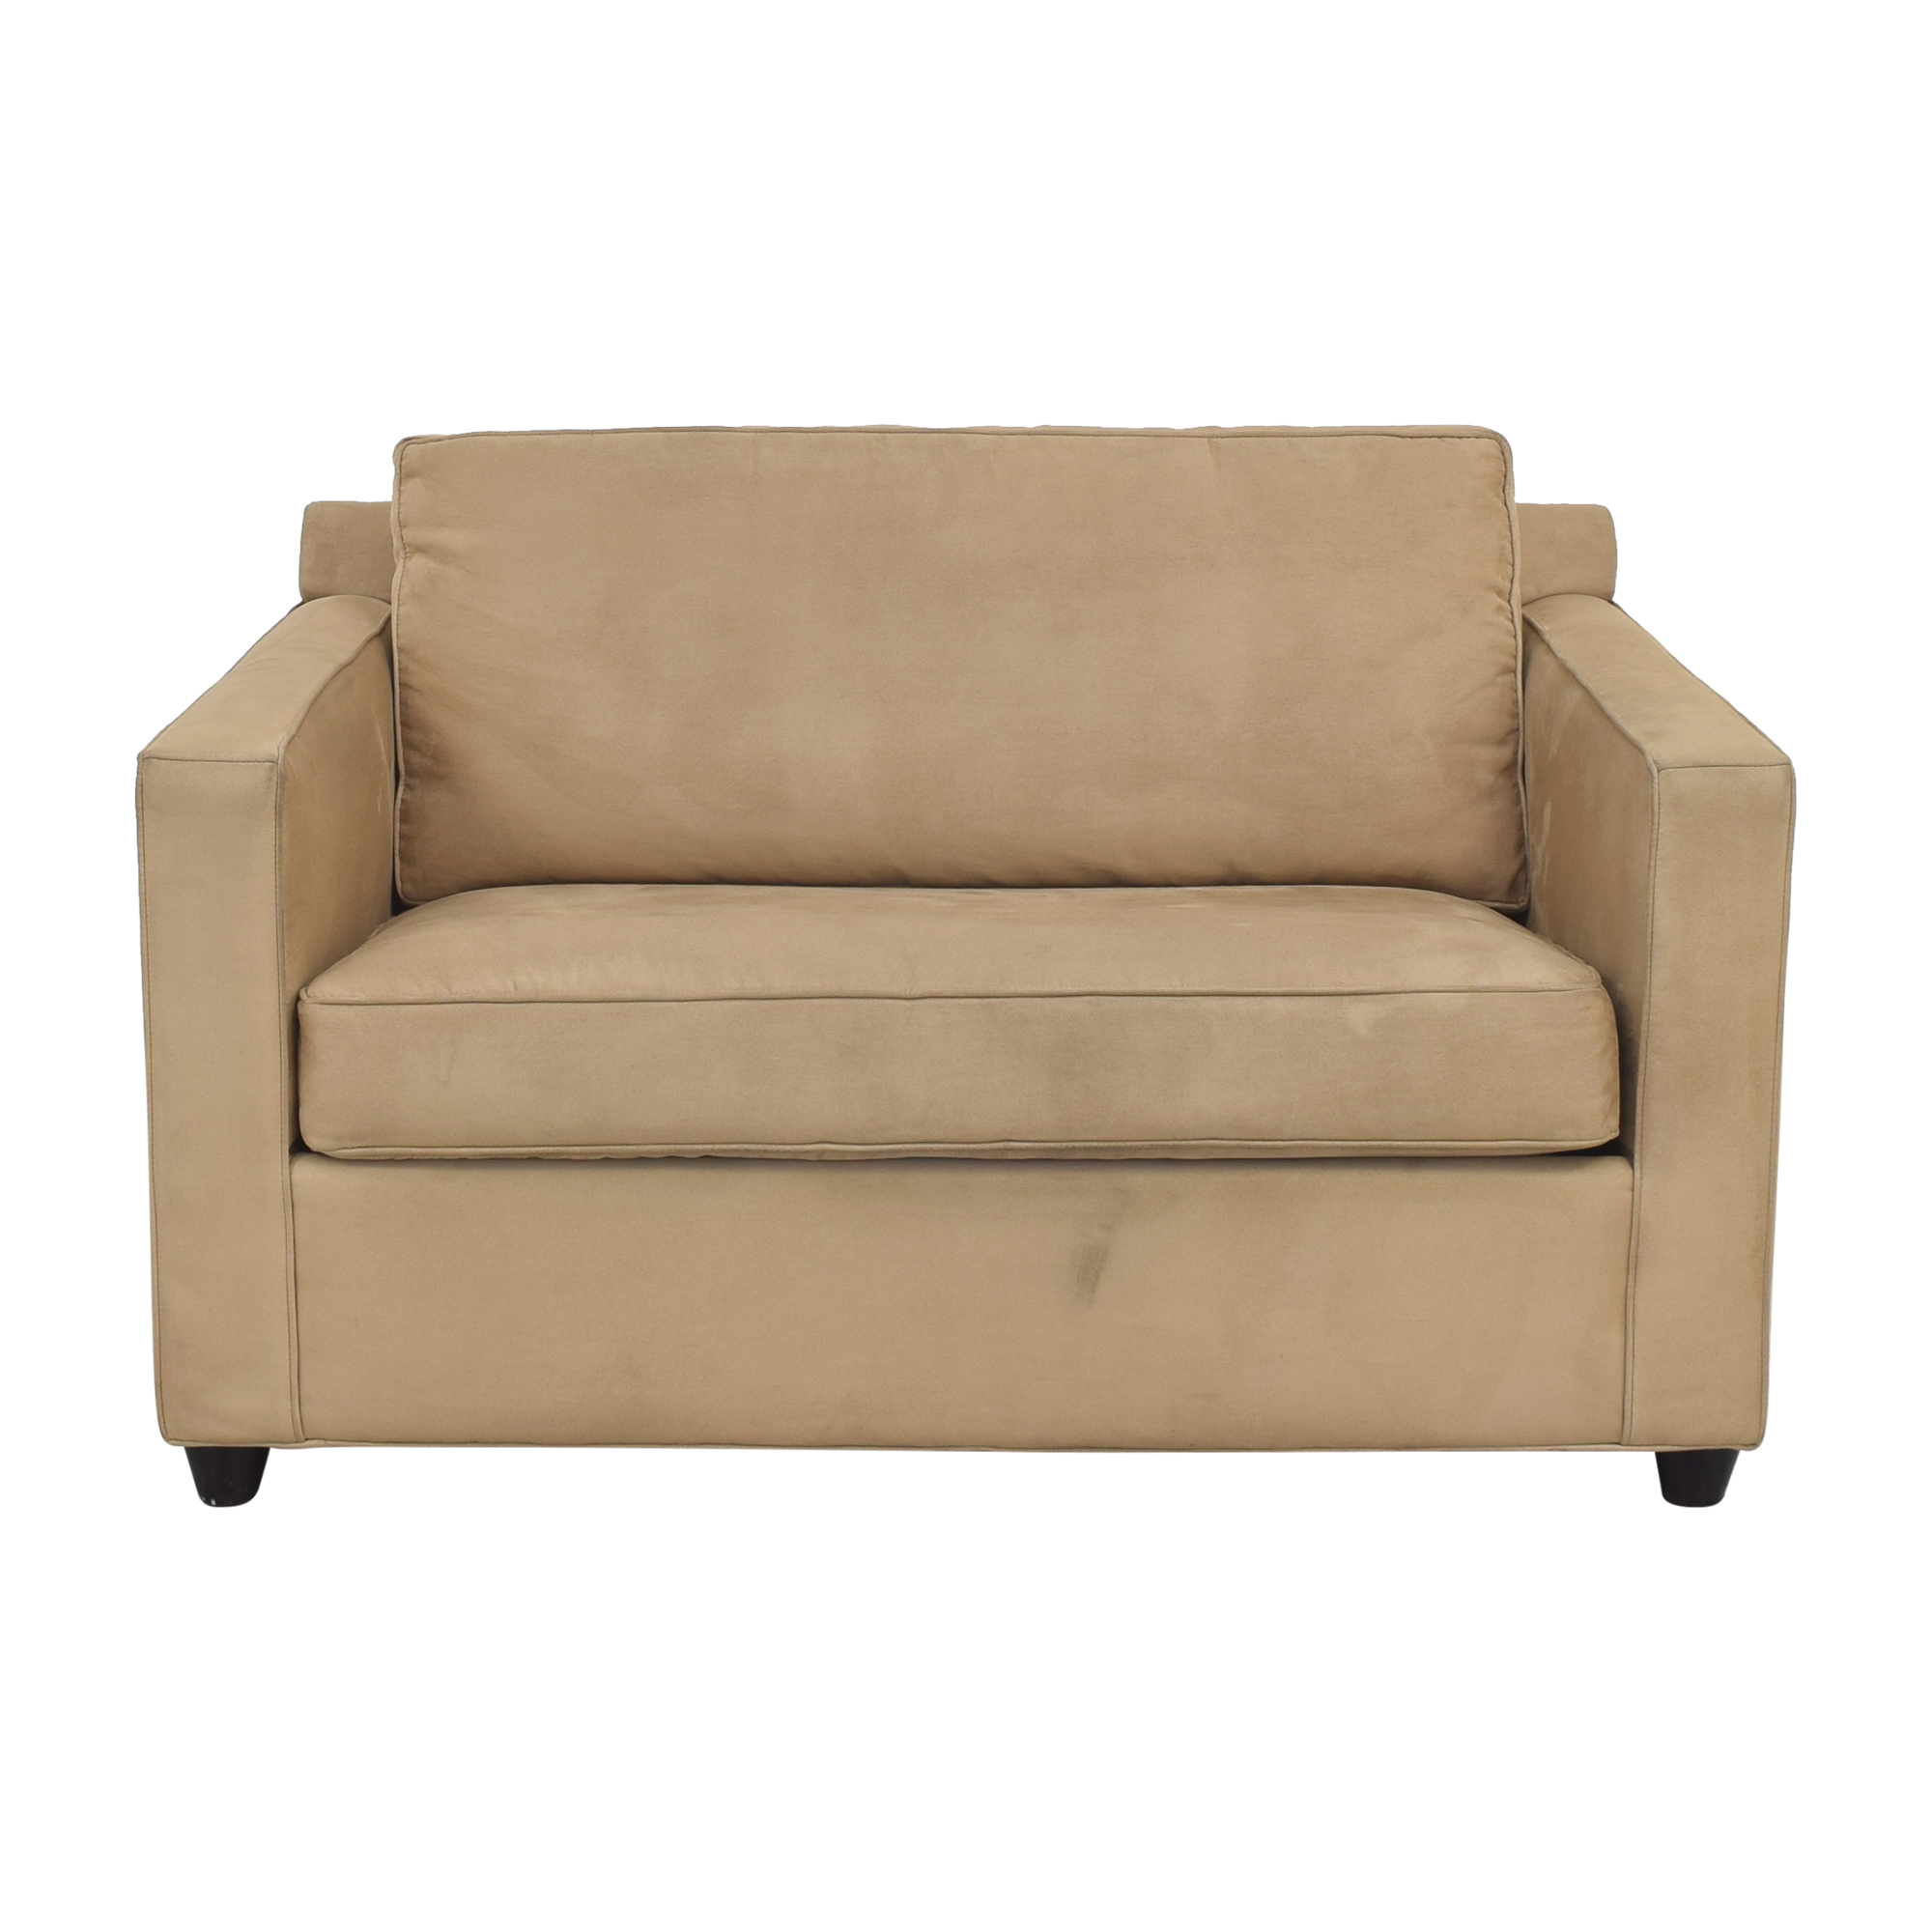 Crate & Barrel Crate & Barrel Troy Twin Sleeper Sofa Sofa Beds